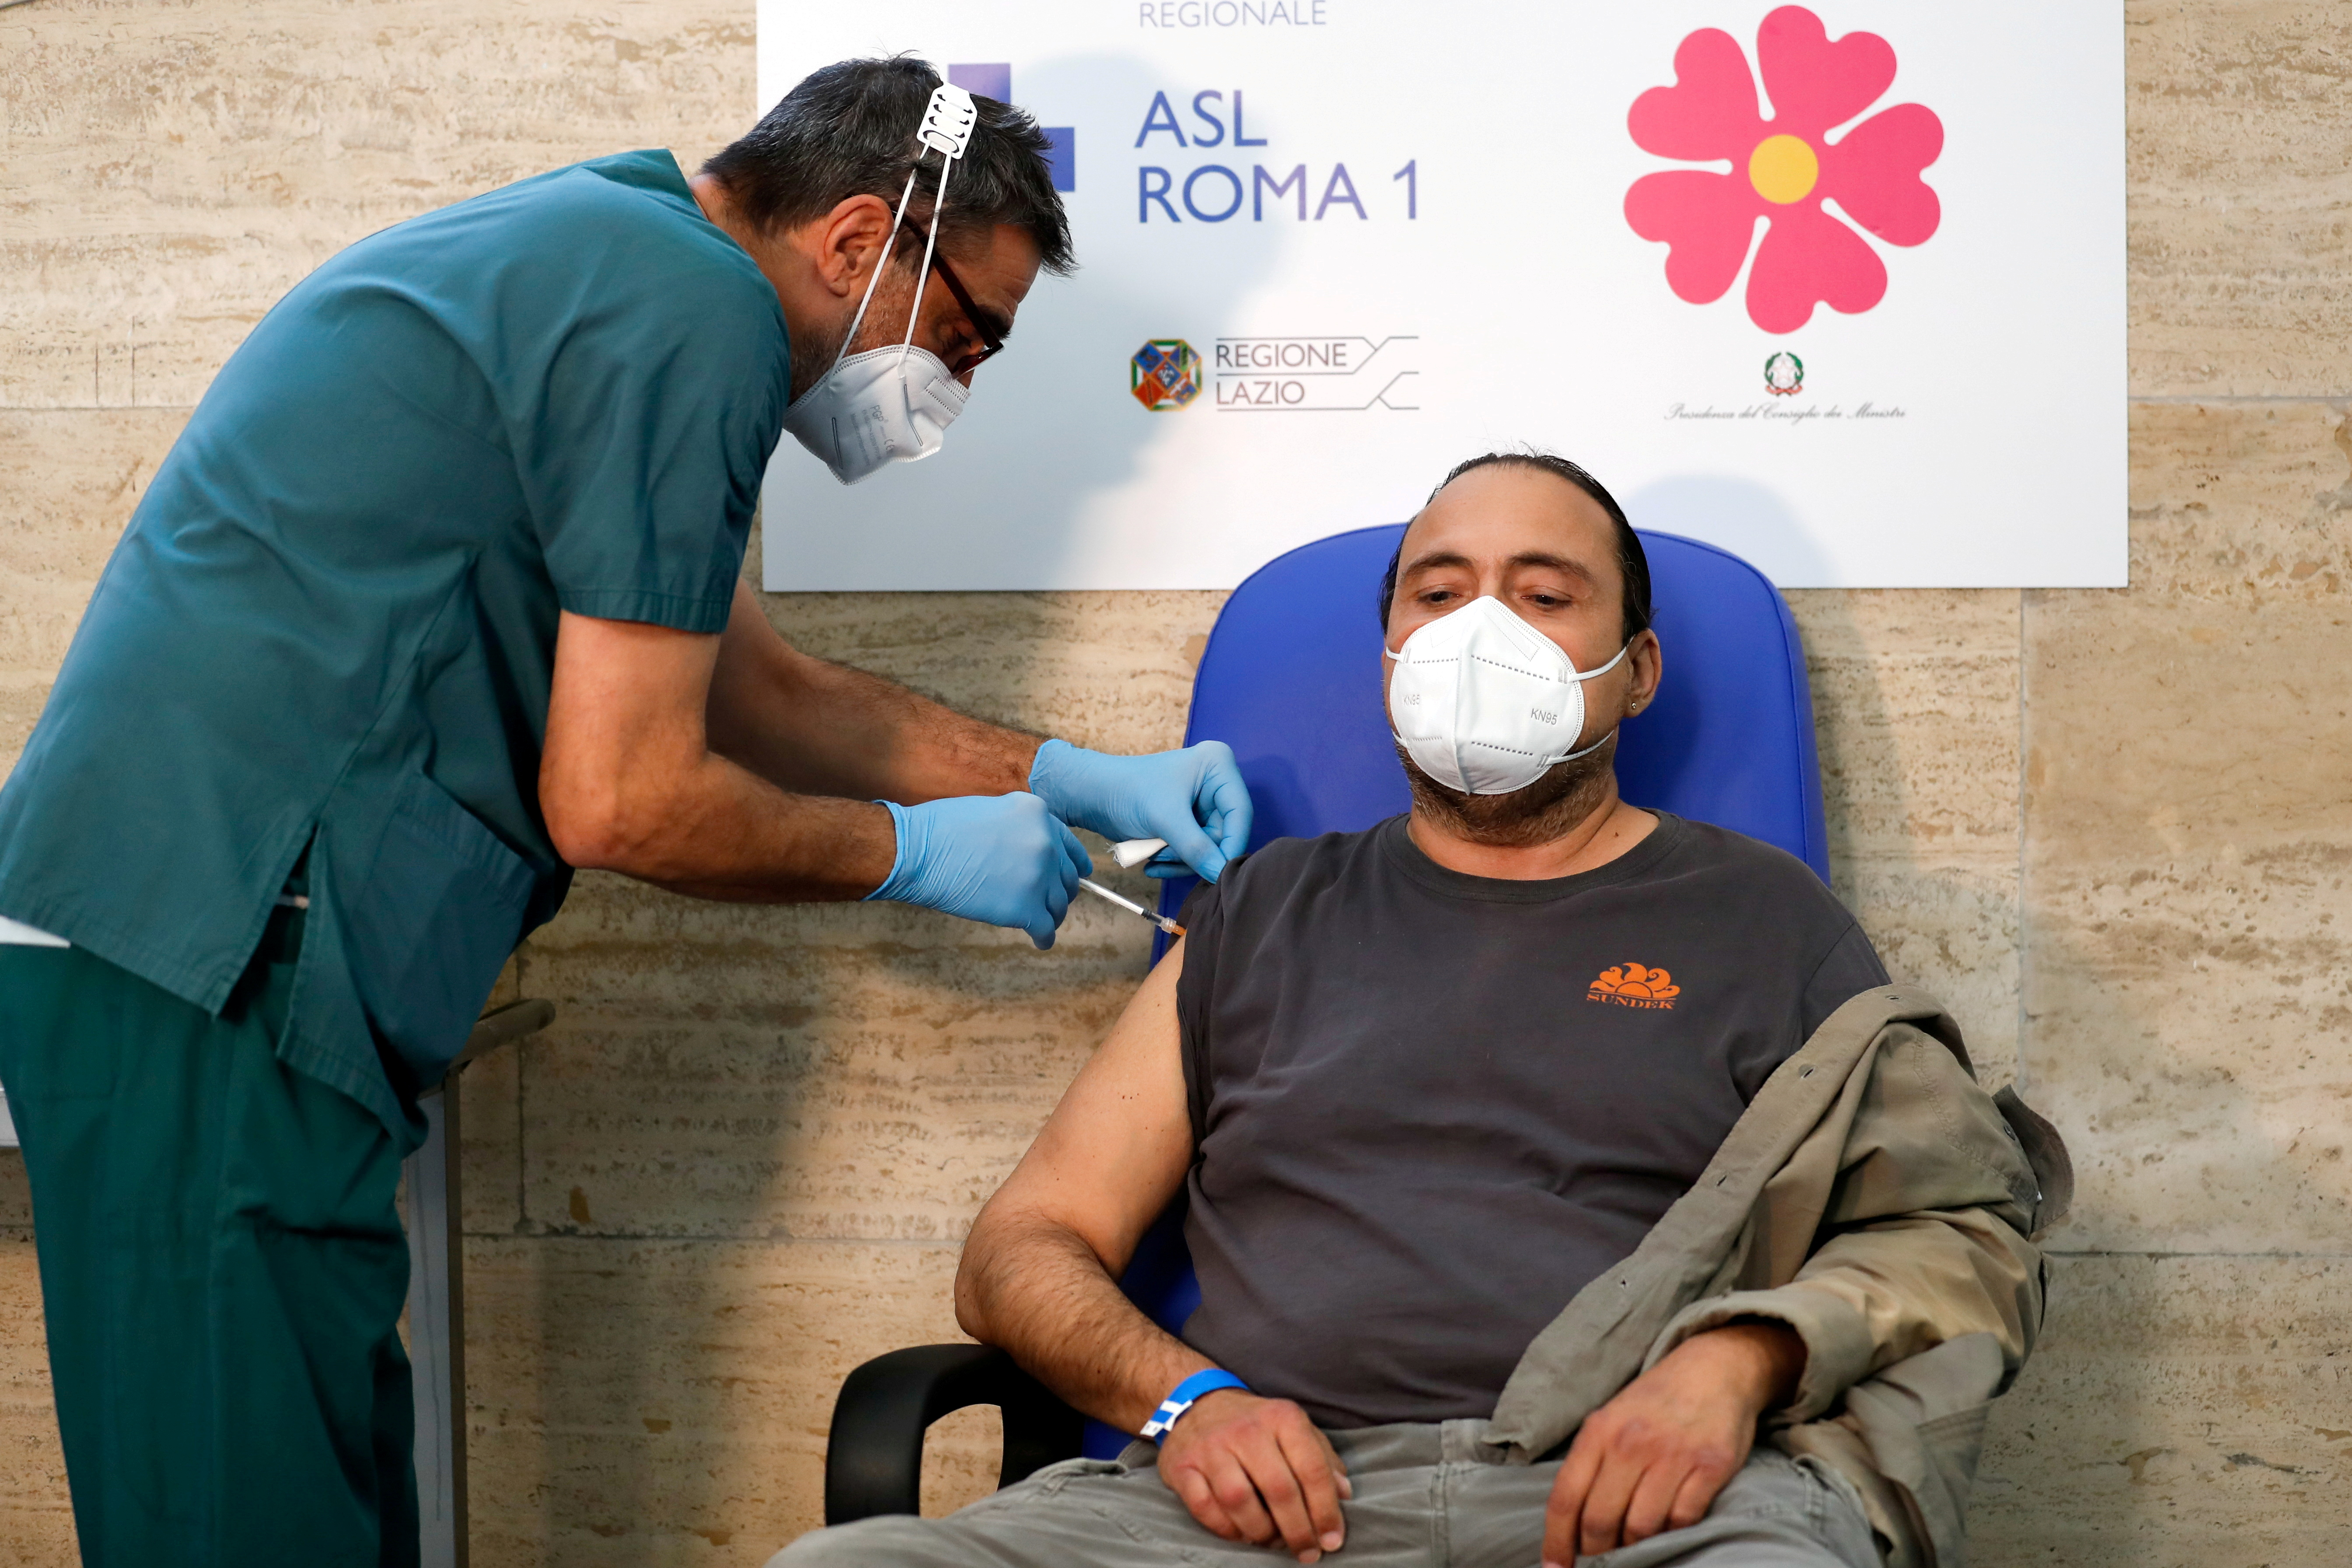 A health worker administers the third dose of a coronavirus disease (COVID-19) vaccine to Ivano Arcangeli, a patient deemed to be 'fragile', as vaccinations jump in Italy after the government made inoculation mandatory for all workers, in Rome, Italy, September 21, 2021. REUTERS/Yara Nardi/File Photo